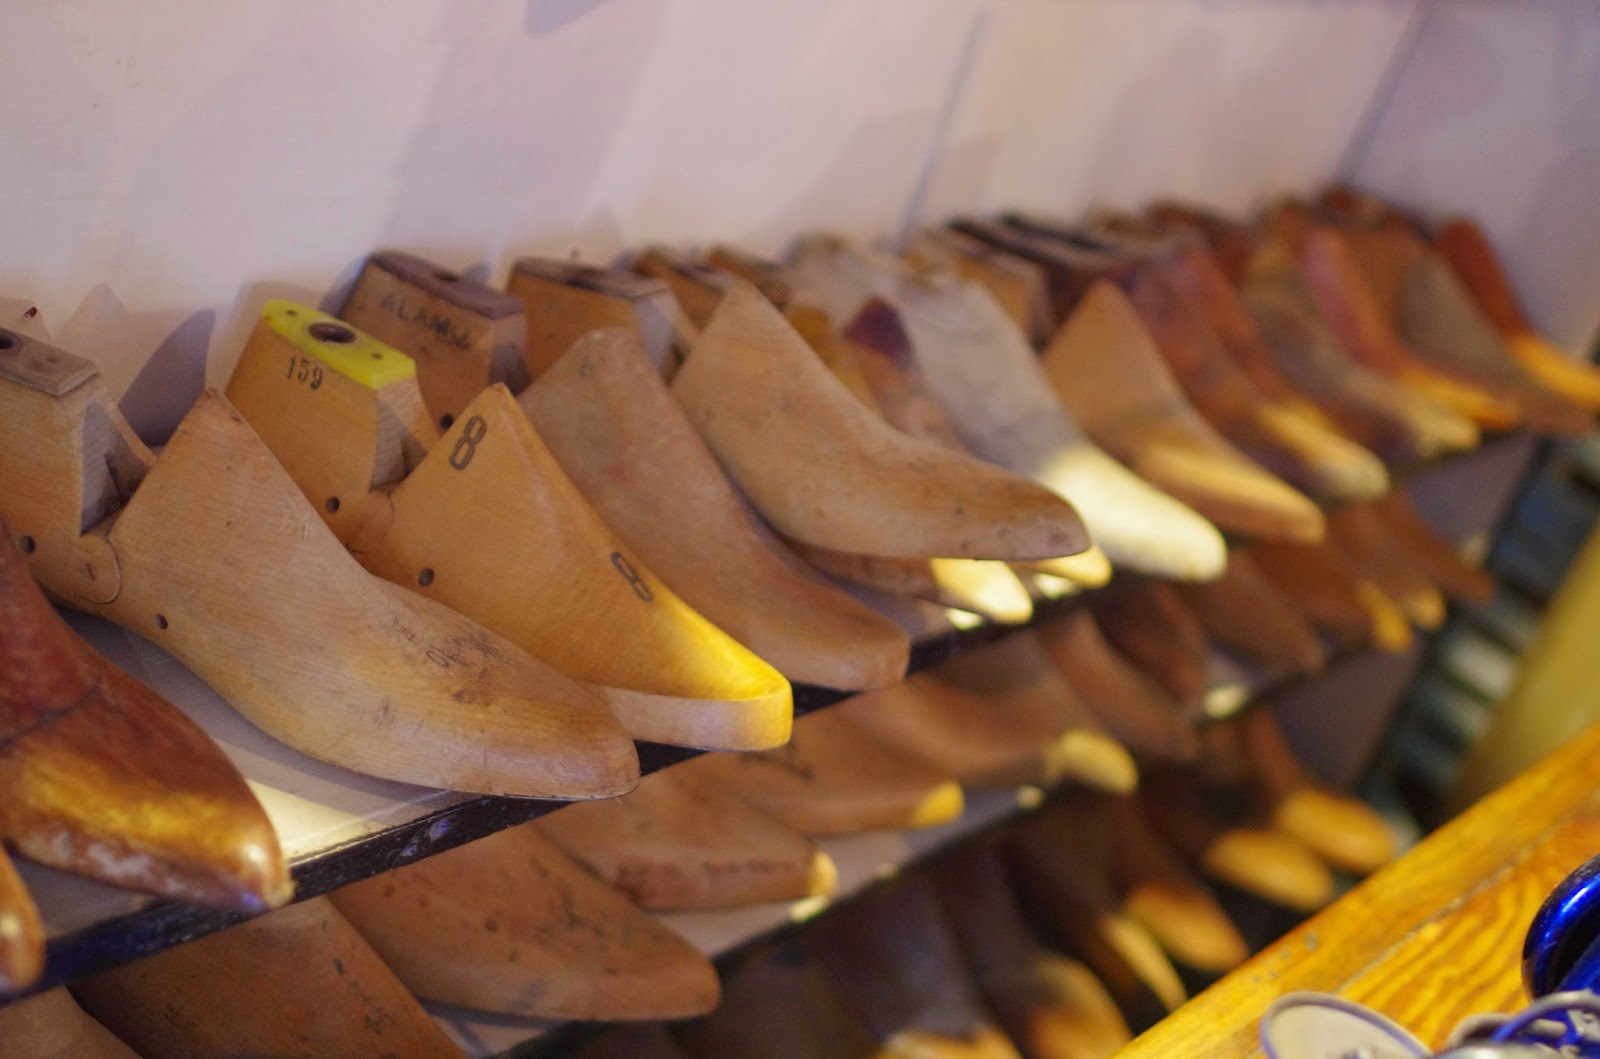 Photograph of shoes on rack